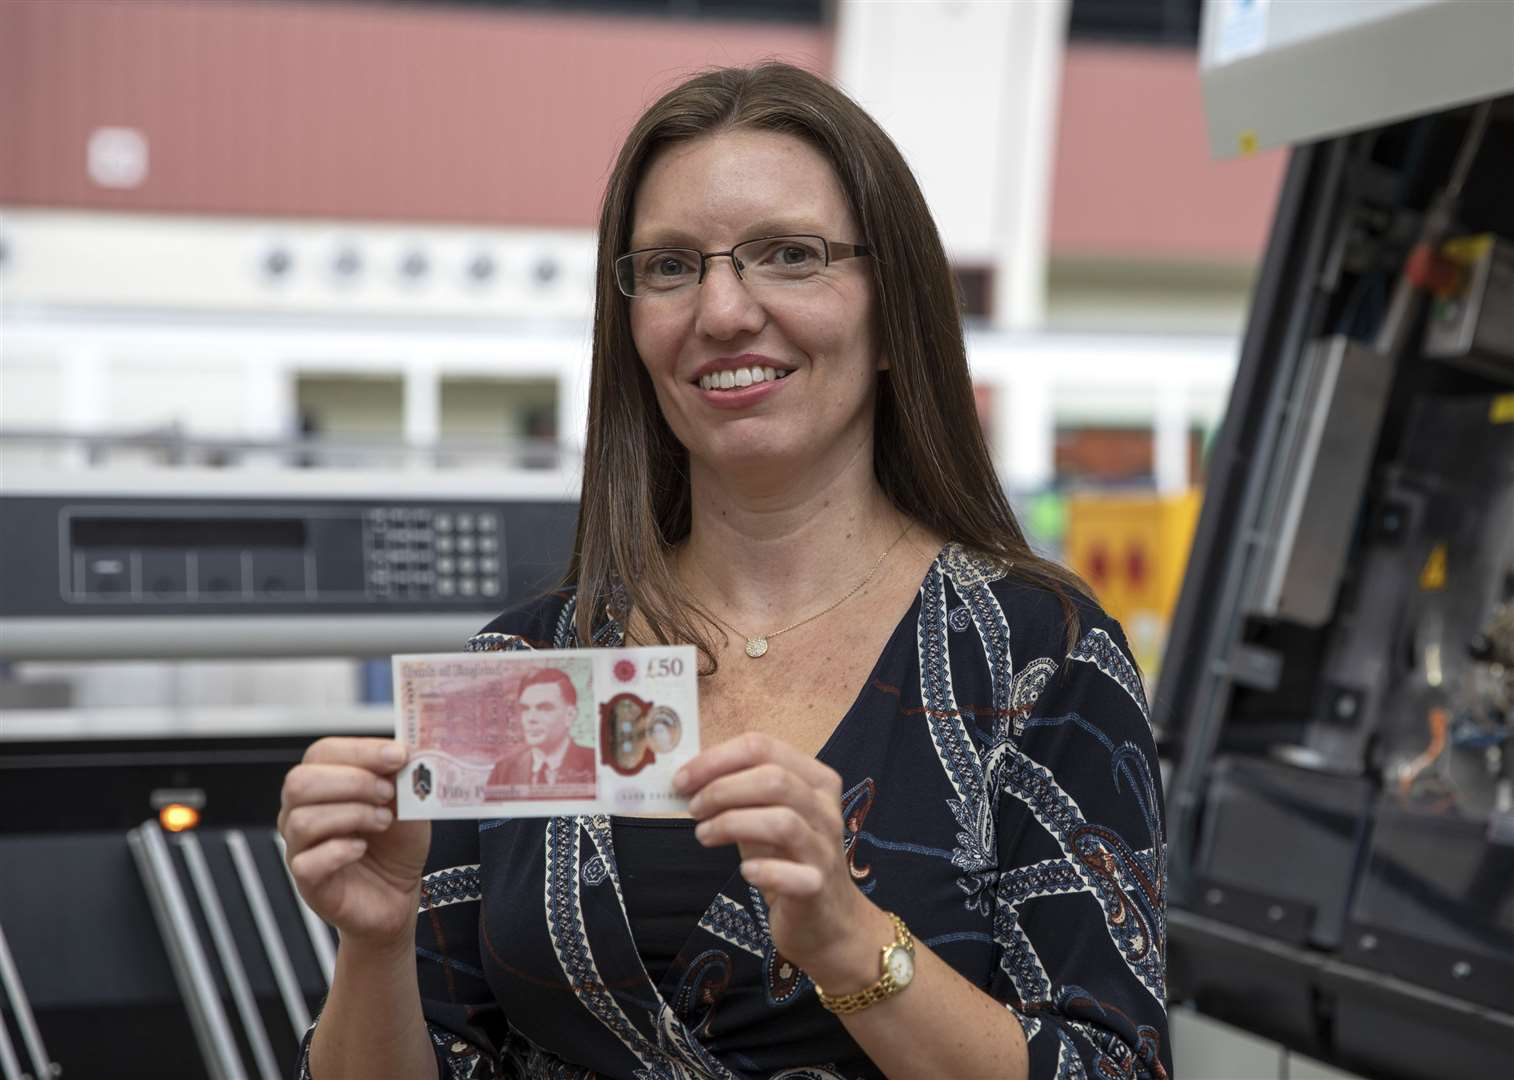 Sarah John, chief cashier at the Bank of England, holding the new ££50 note featuring scientist Alan Turing which will be issued for the first time on June 23, 2021. Picture: Bank of England